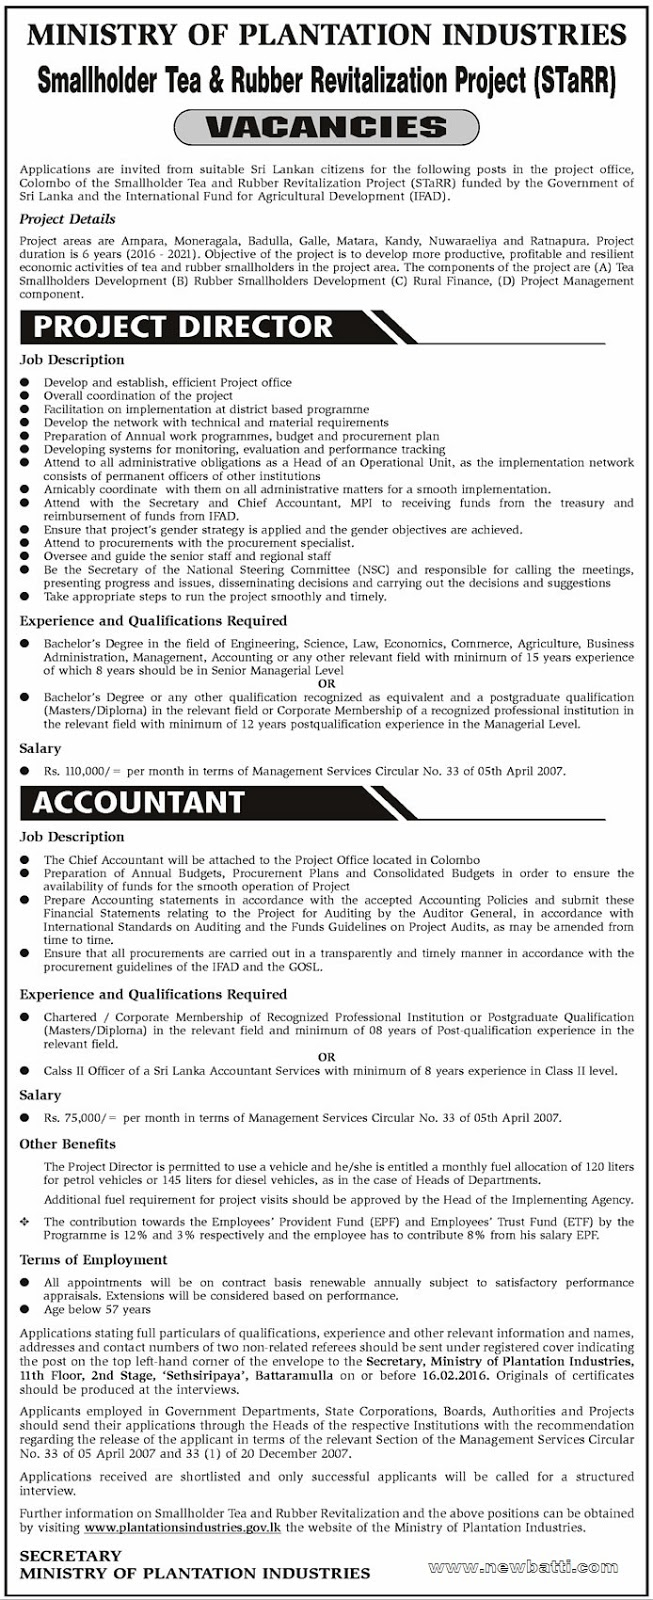 Vacancy for Project Director, Accountant - Ministry of